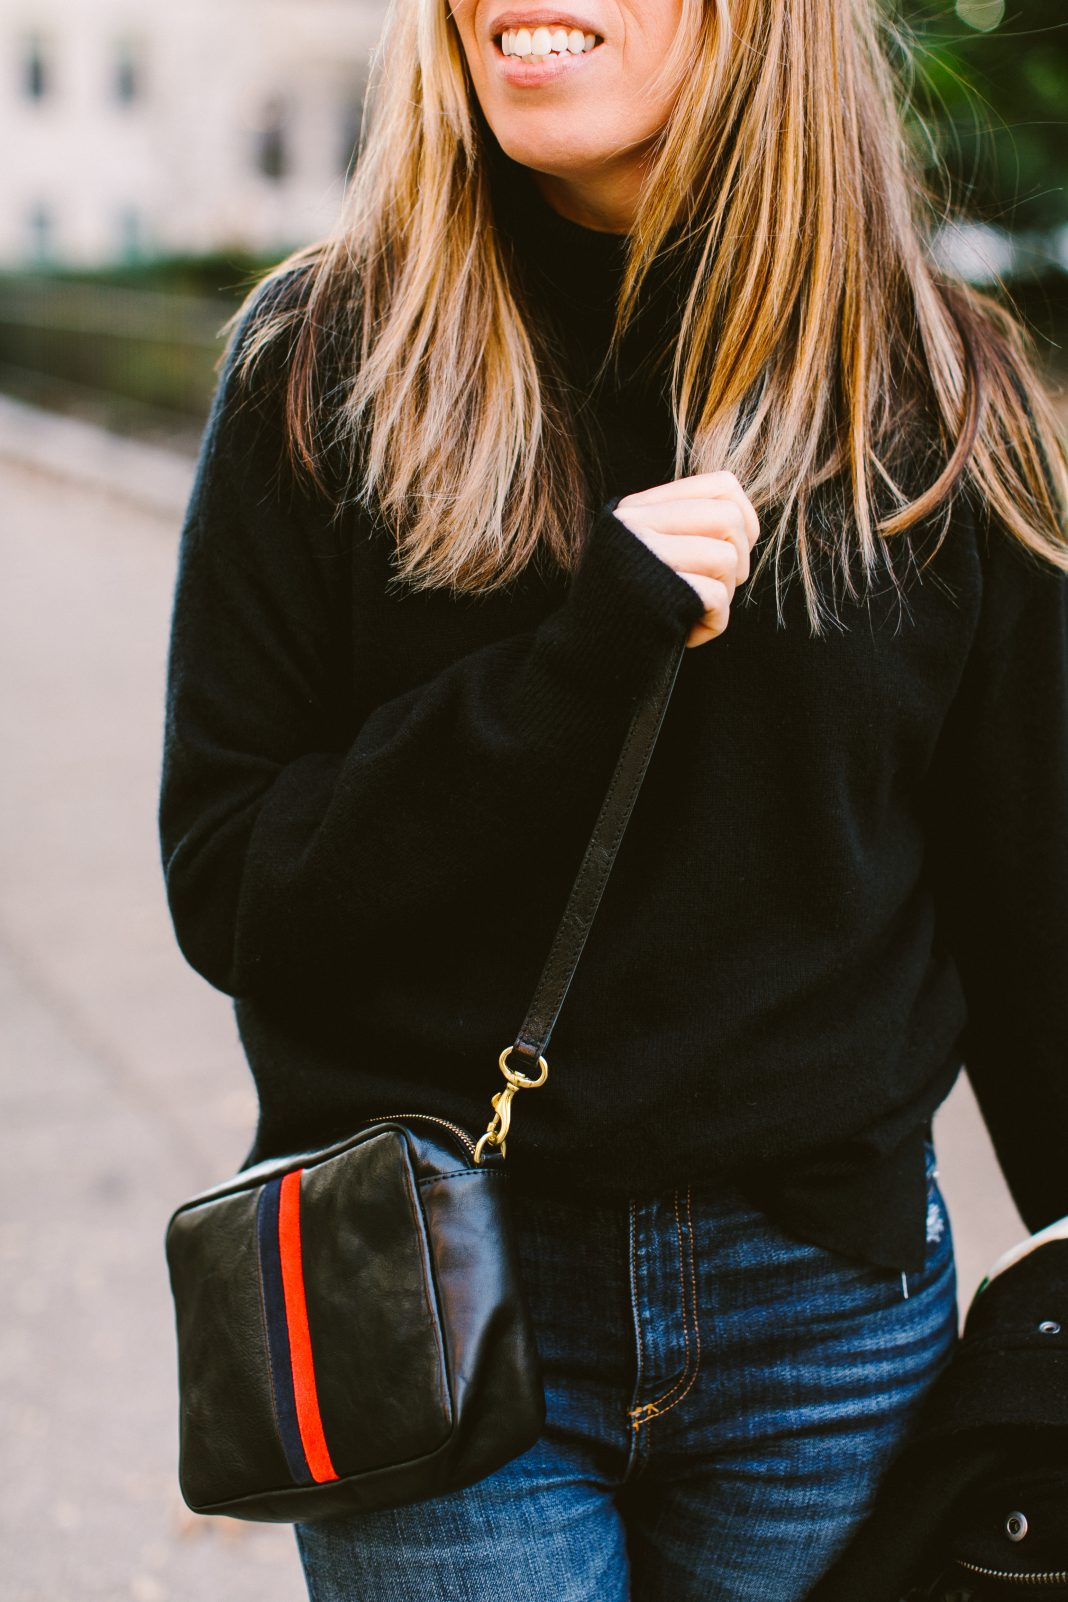 Obvi you need a sweater or 3 to go w/ those jeans. NAADAM, Free People, Vince, Madewell — the best Black Friday deals on warm, sexy, oversized sweaters — right here.